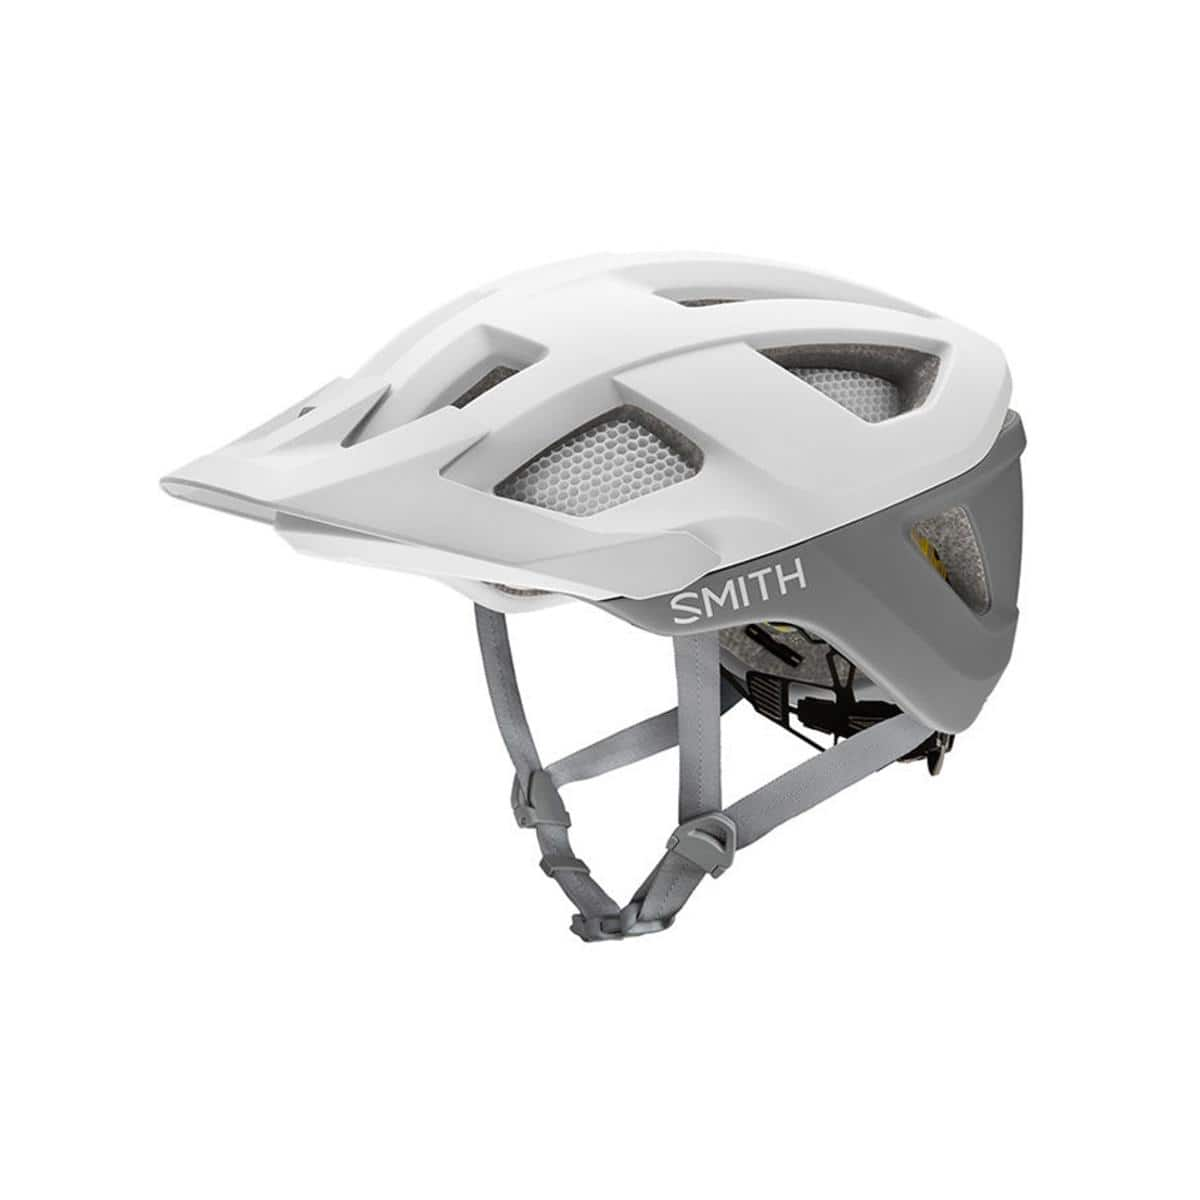 Smith Session Bike Helmet $115 w/ coupon (Forefront 2 $166, Convoy $54, Trace $180 & More)